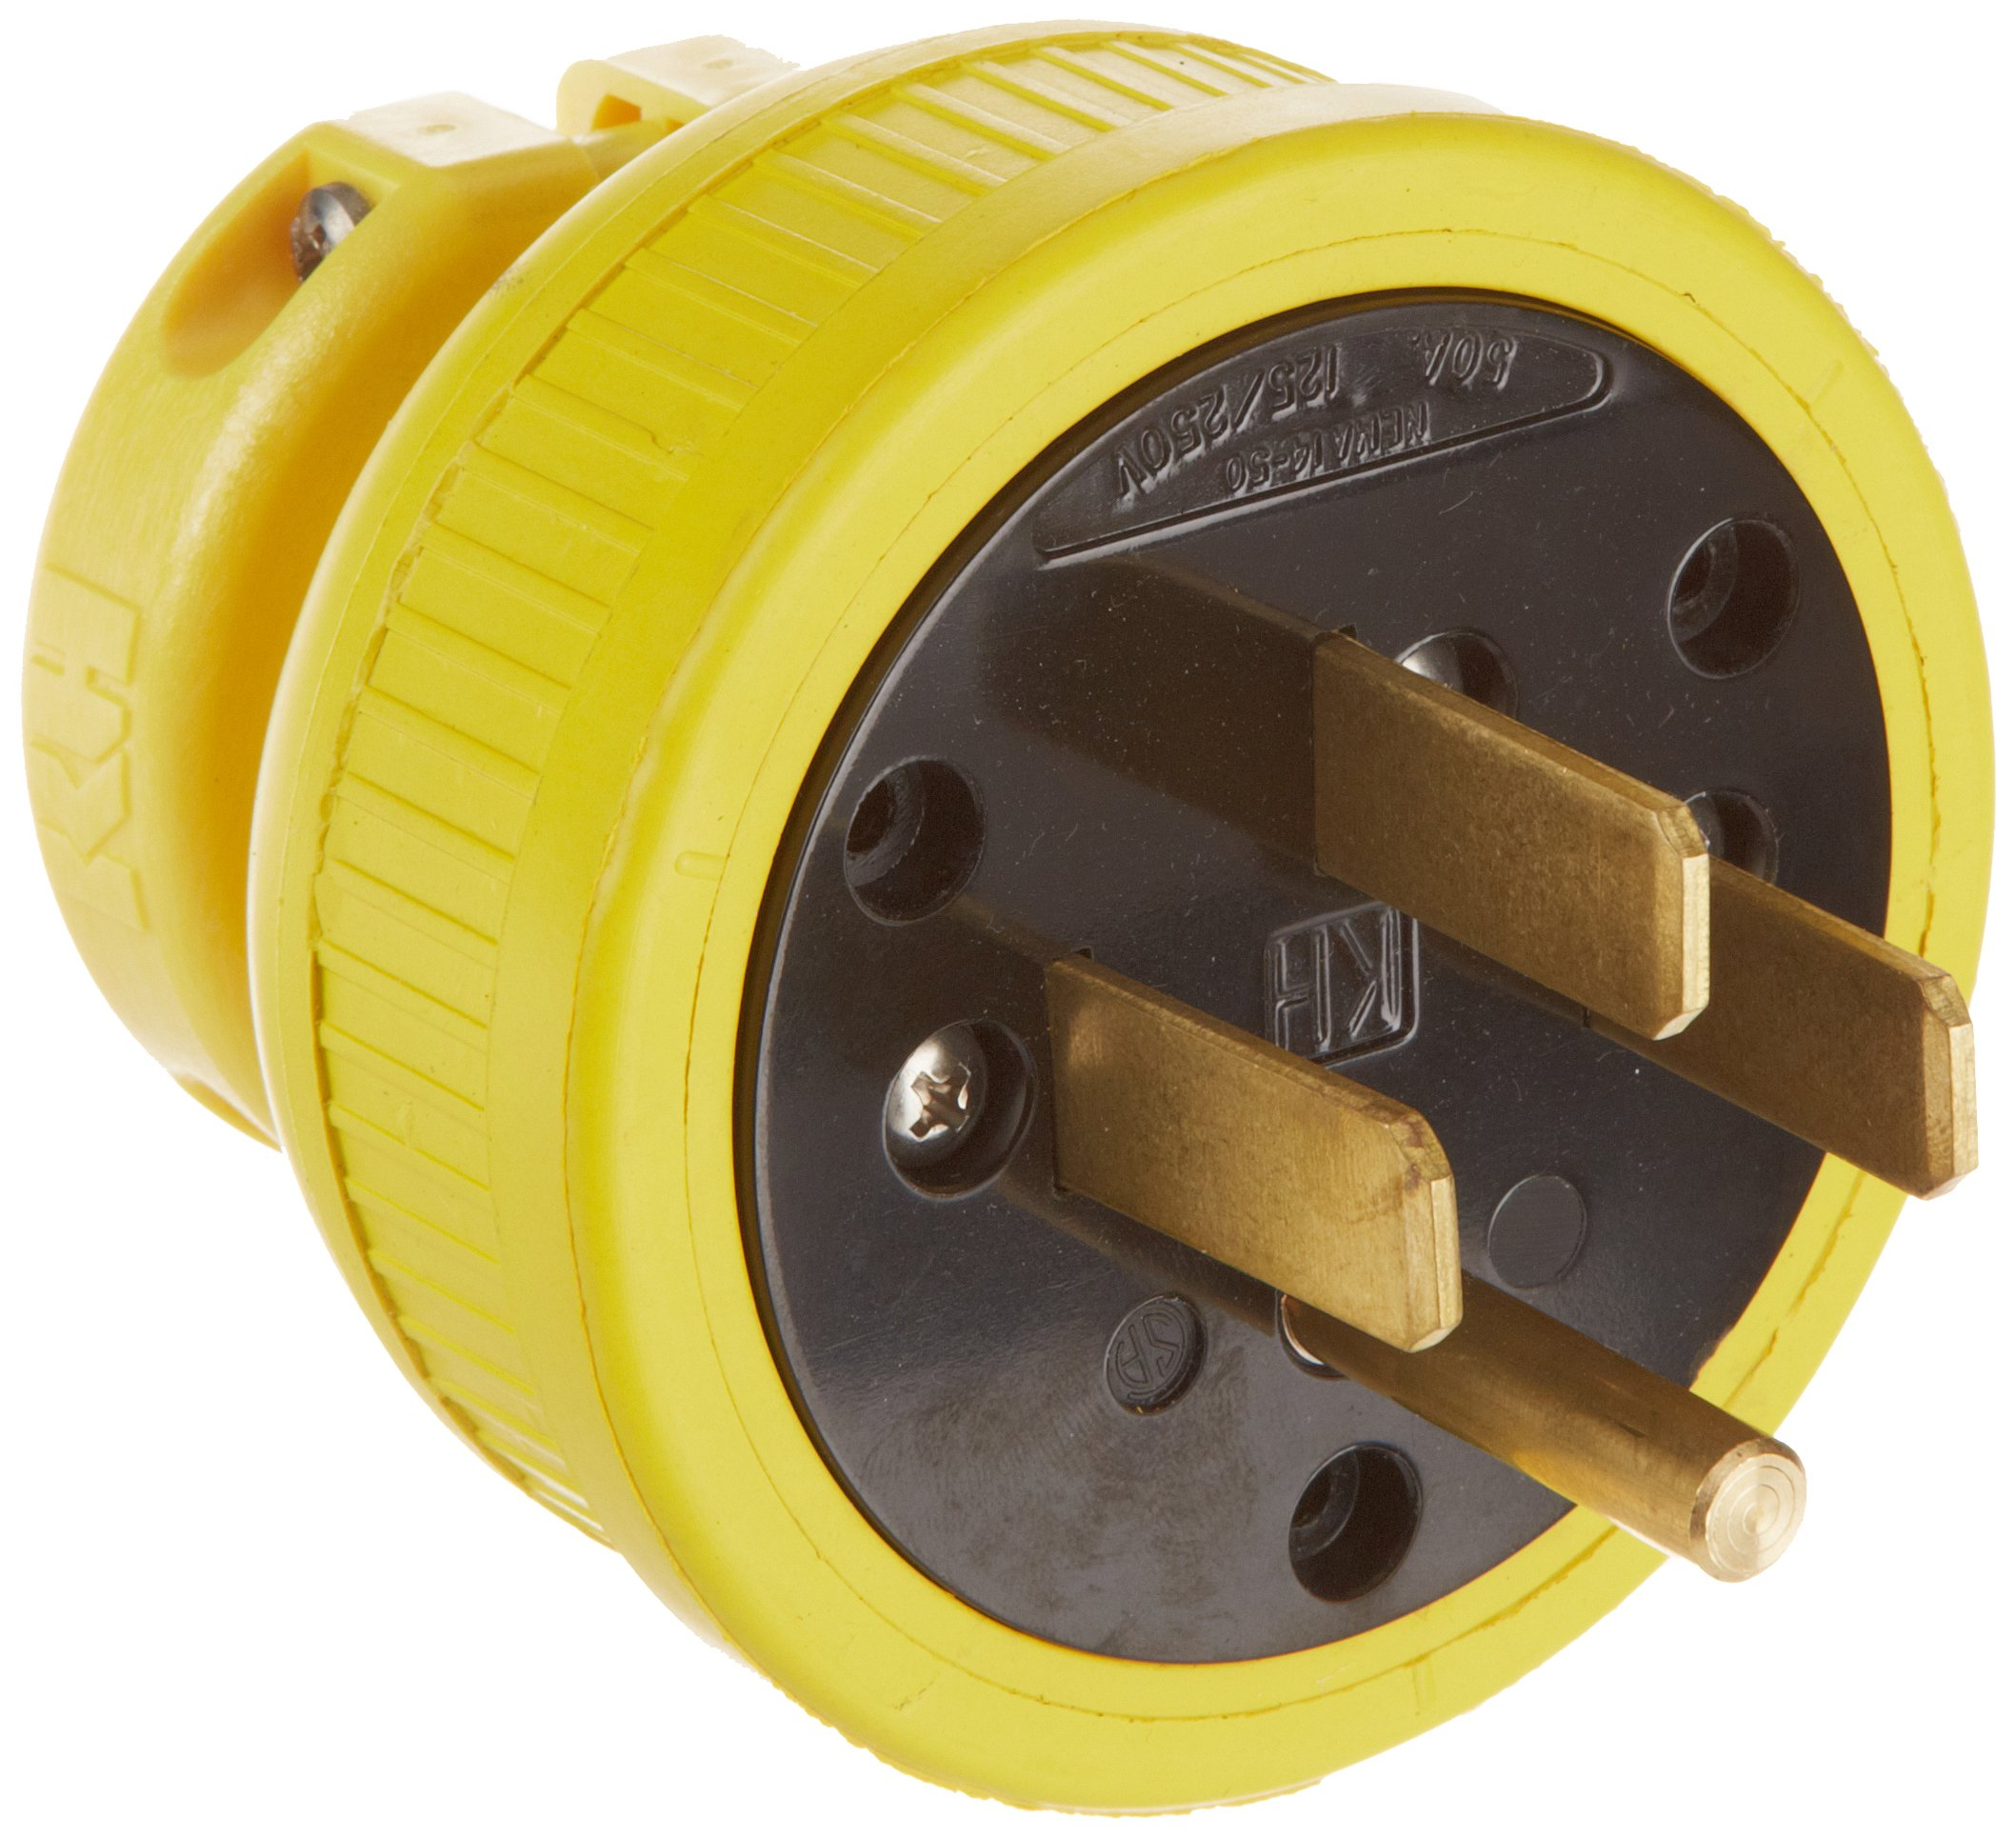 KH Industries P1450DF Rubber/Polycarbonate Rewireable Flip Seal Straight Blade Plug, 2 Pole/4 Wire, 50 amps, 125-250V AC, Yellow